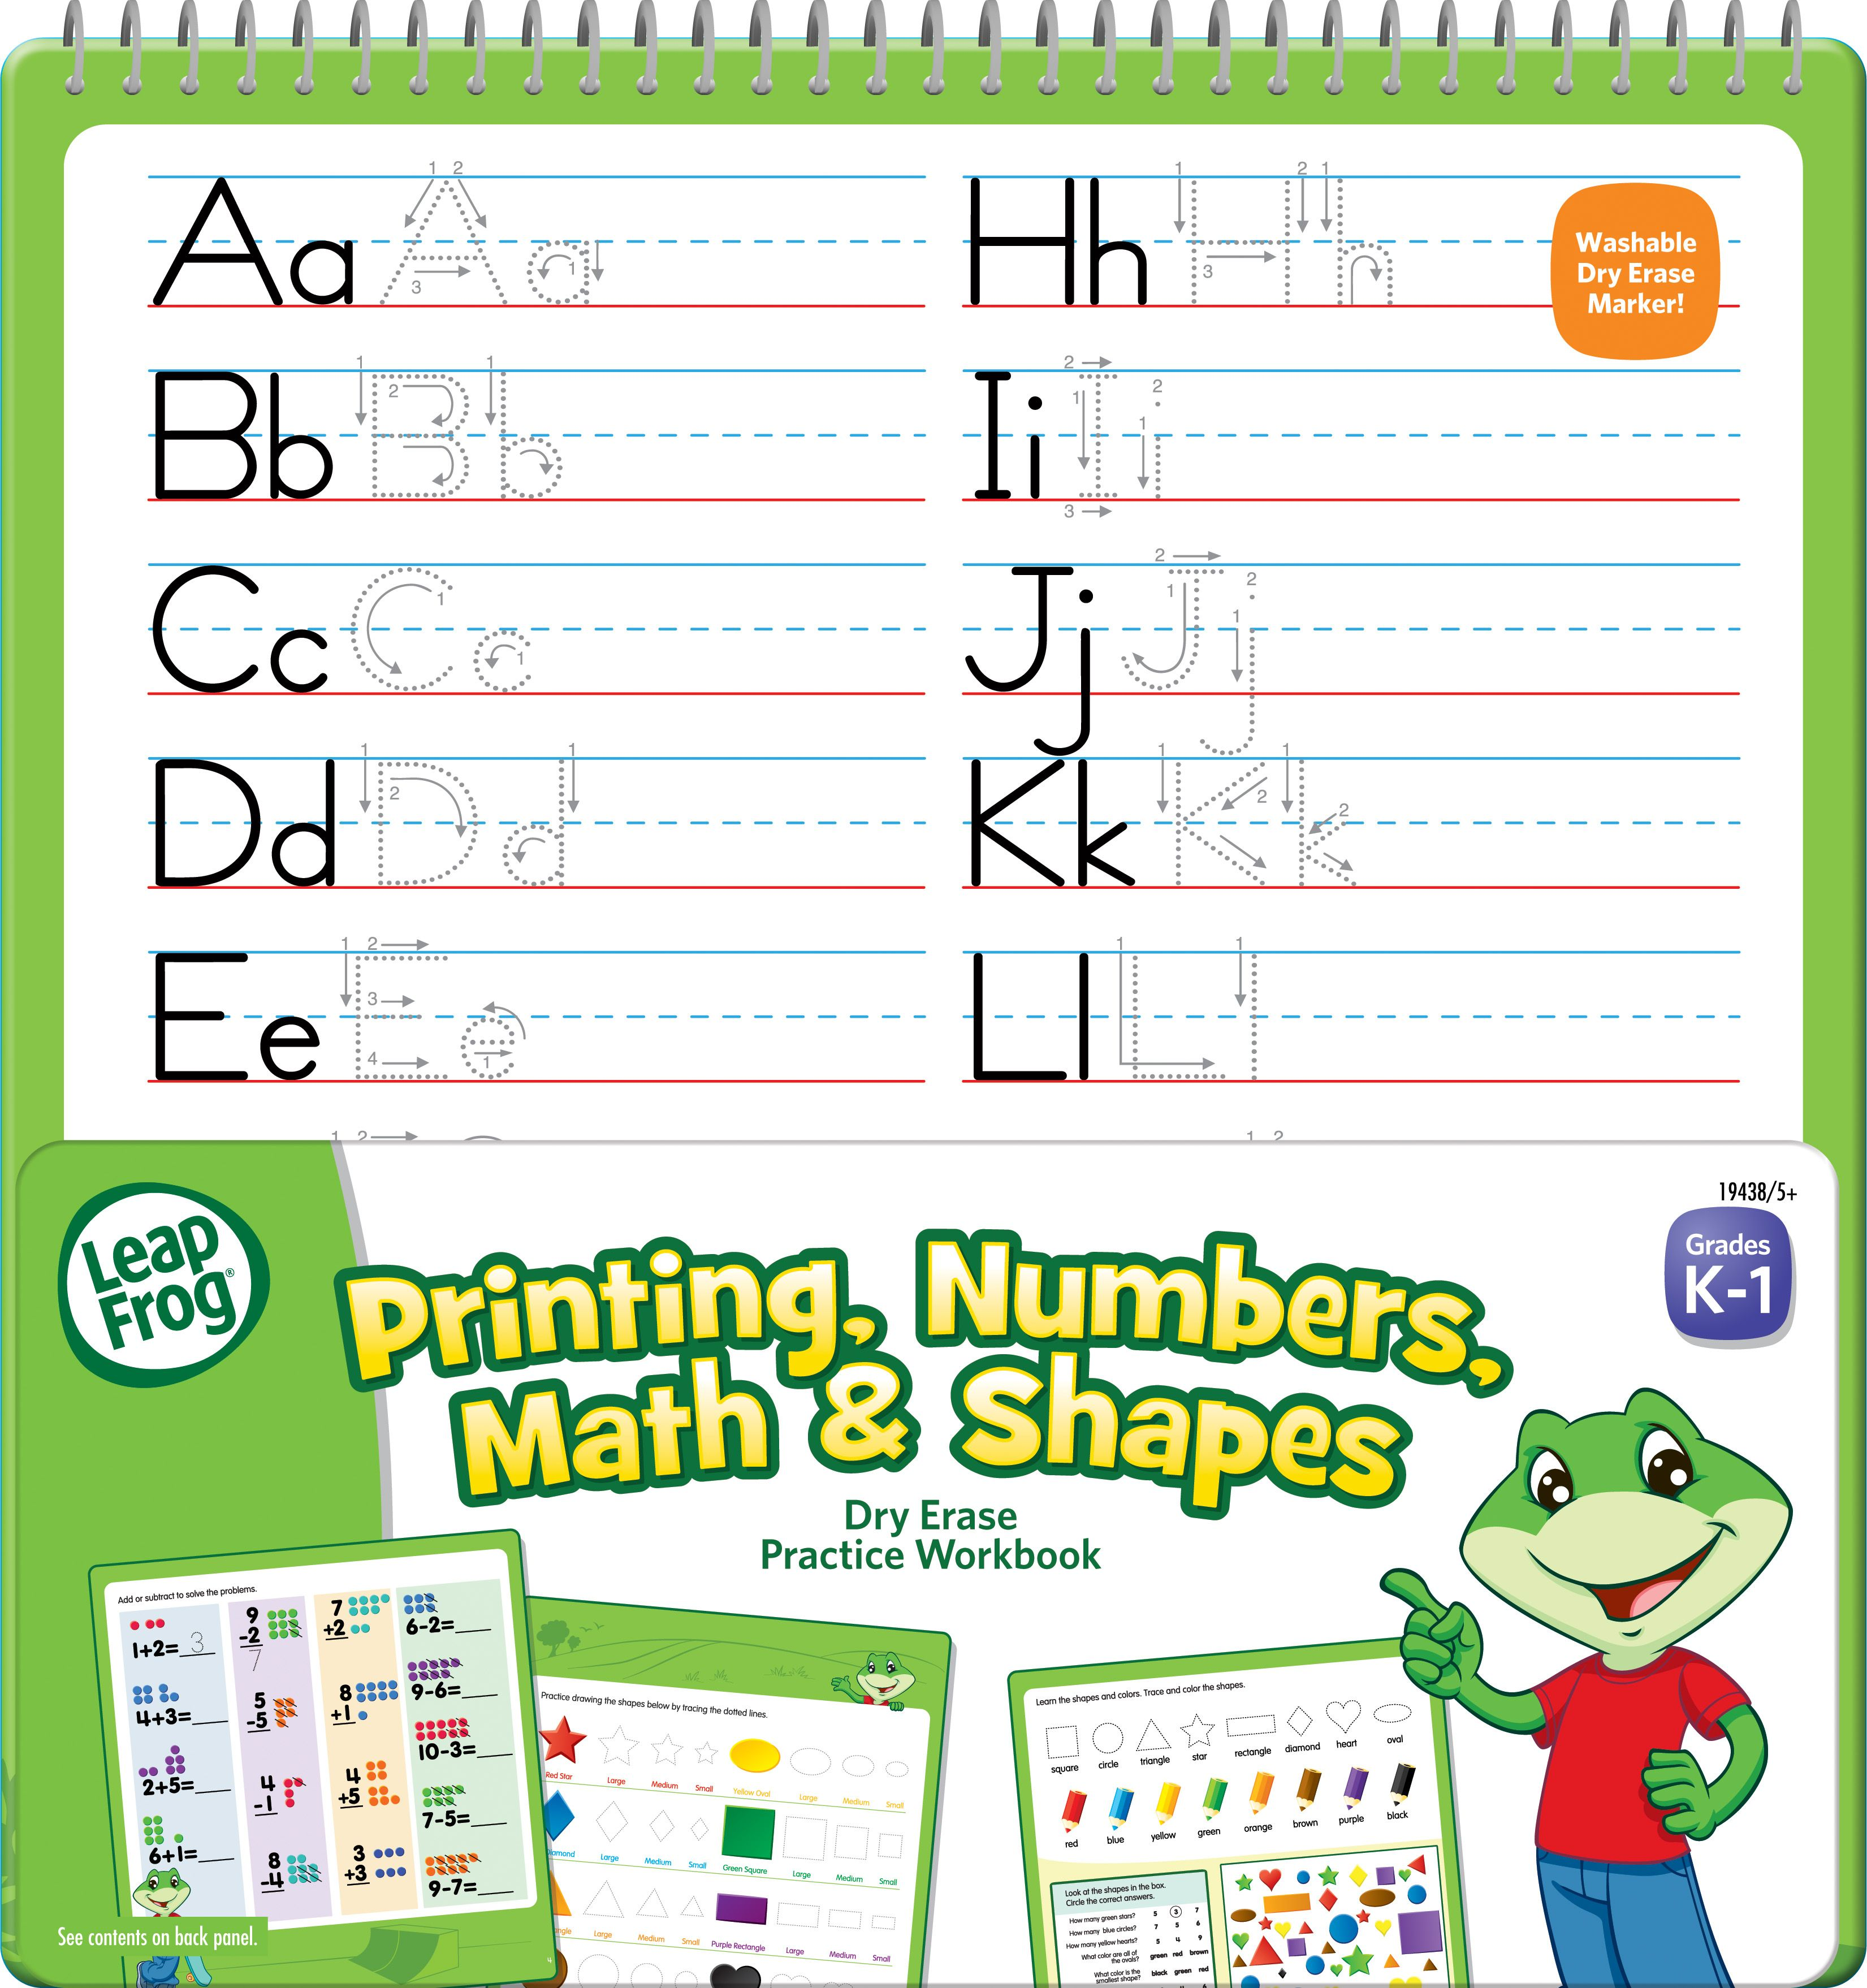 Leapfrog Printing Numbers Math Amp Shapes Is A Large